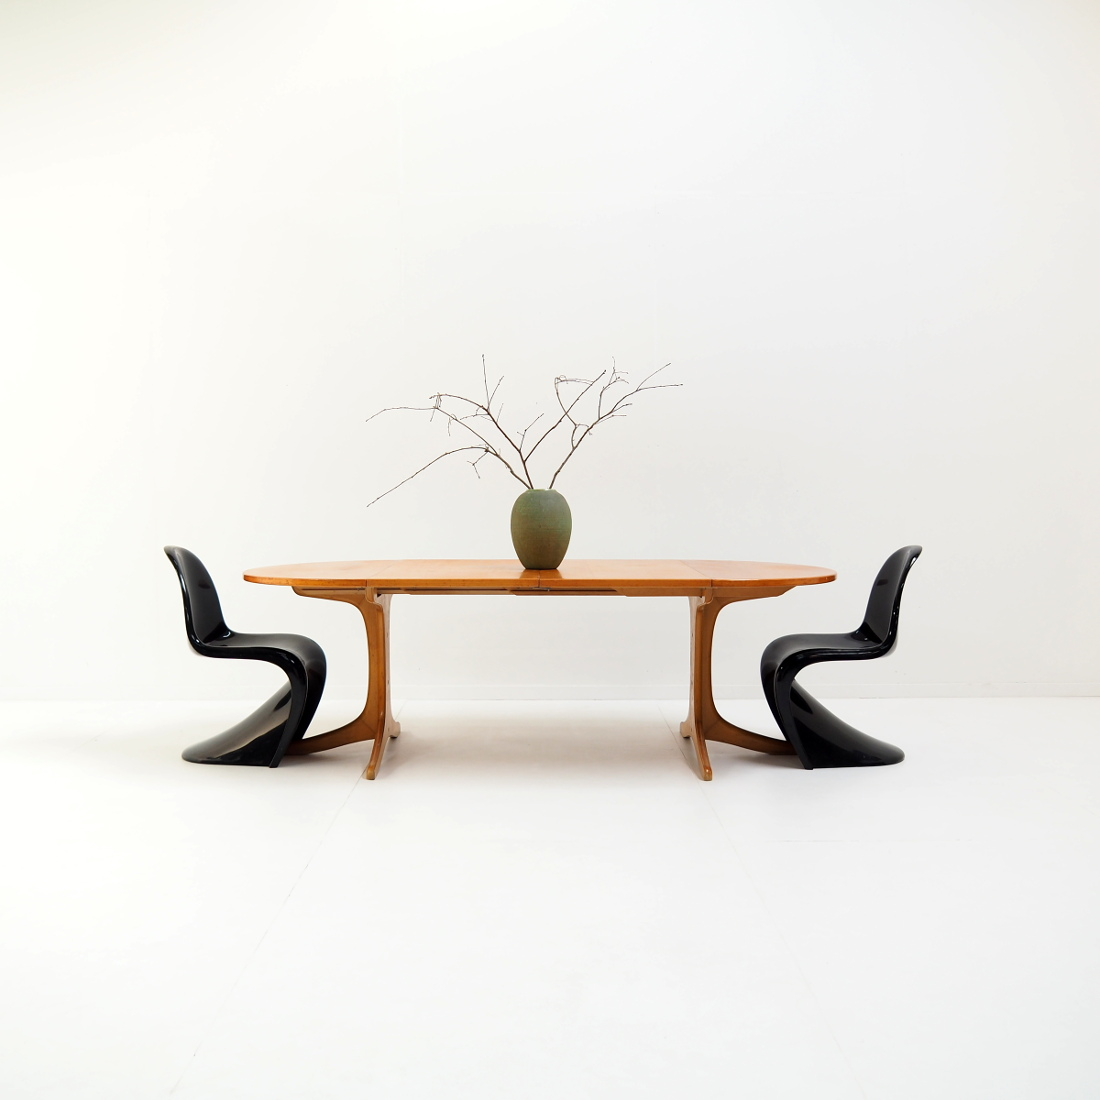 XL extendable table by Thonet